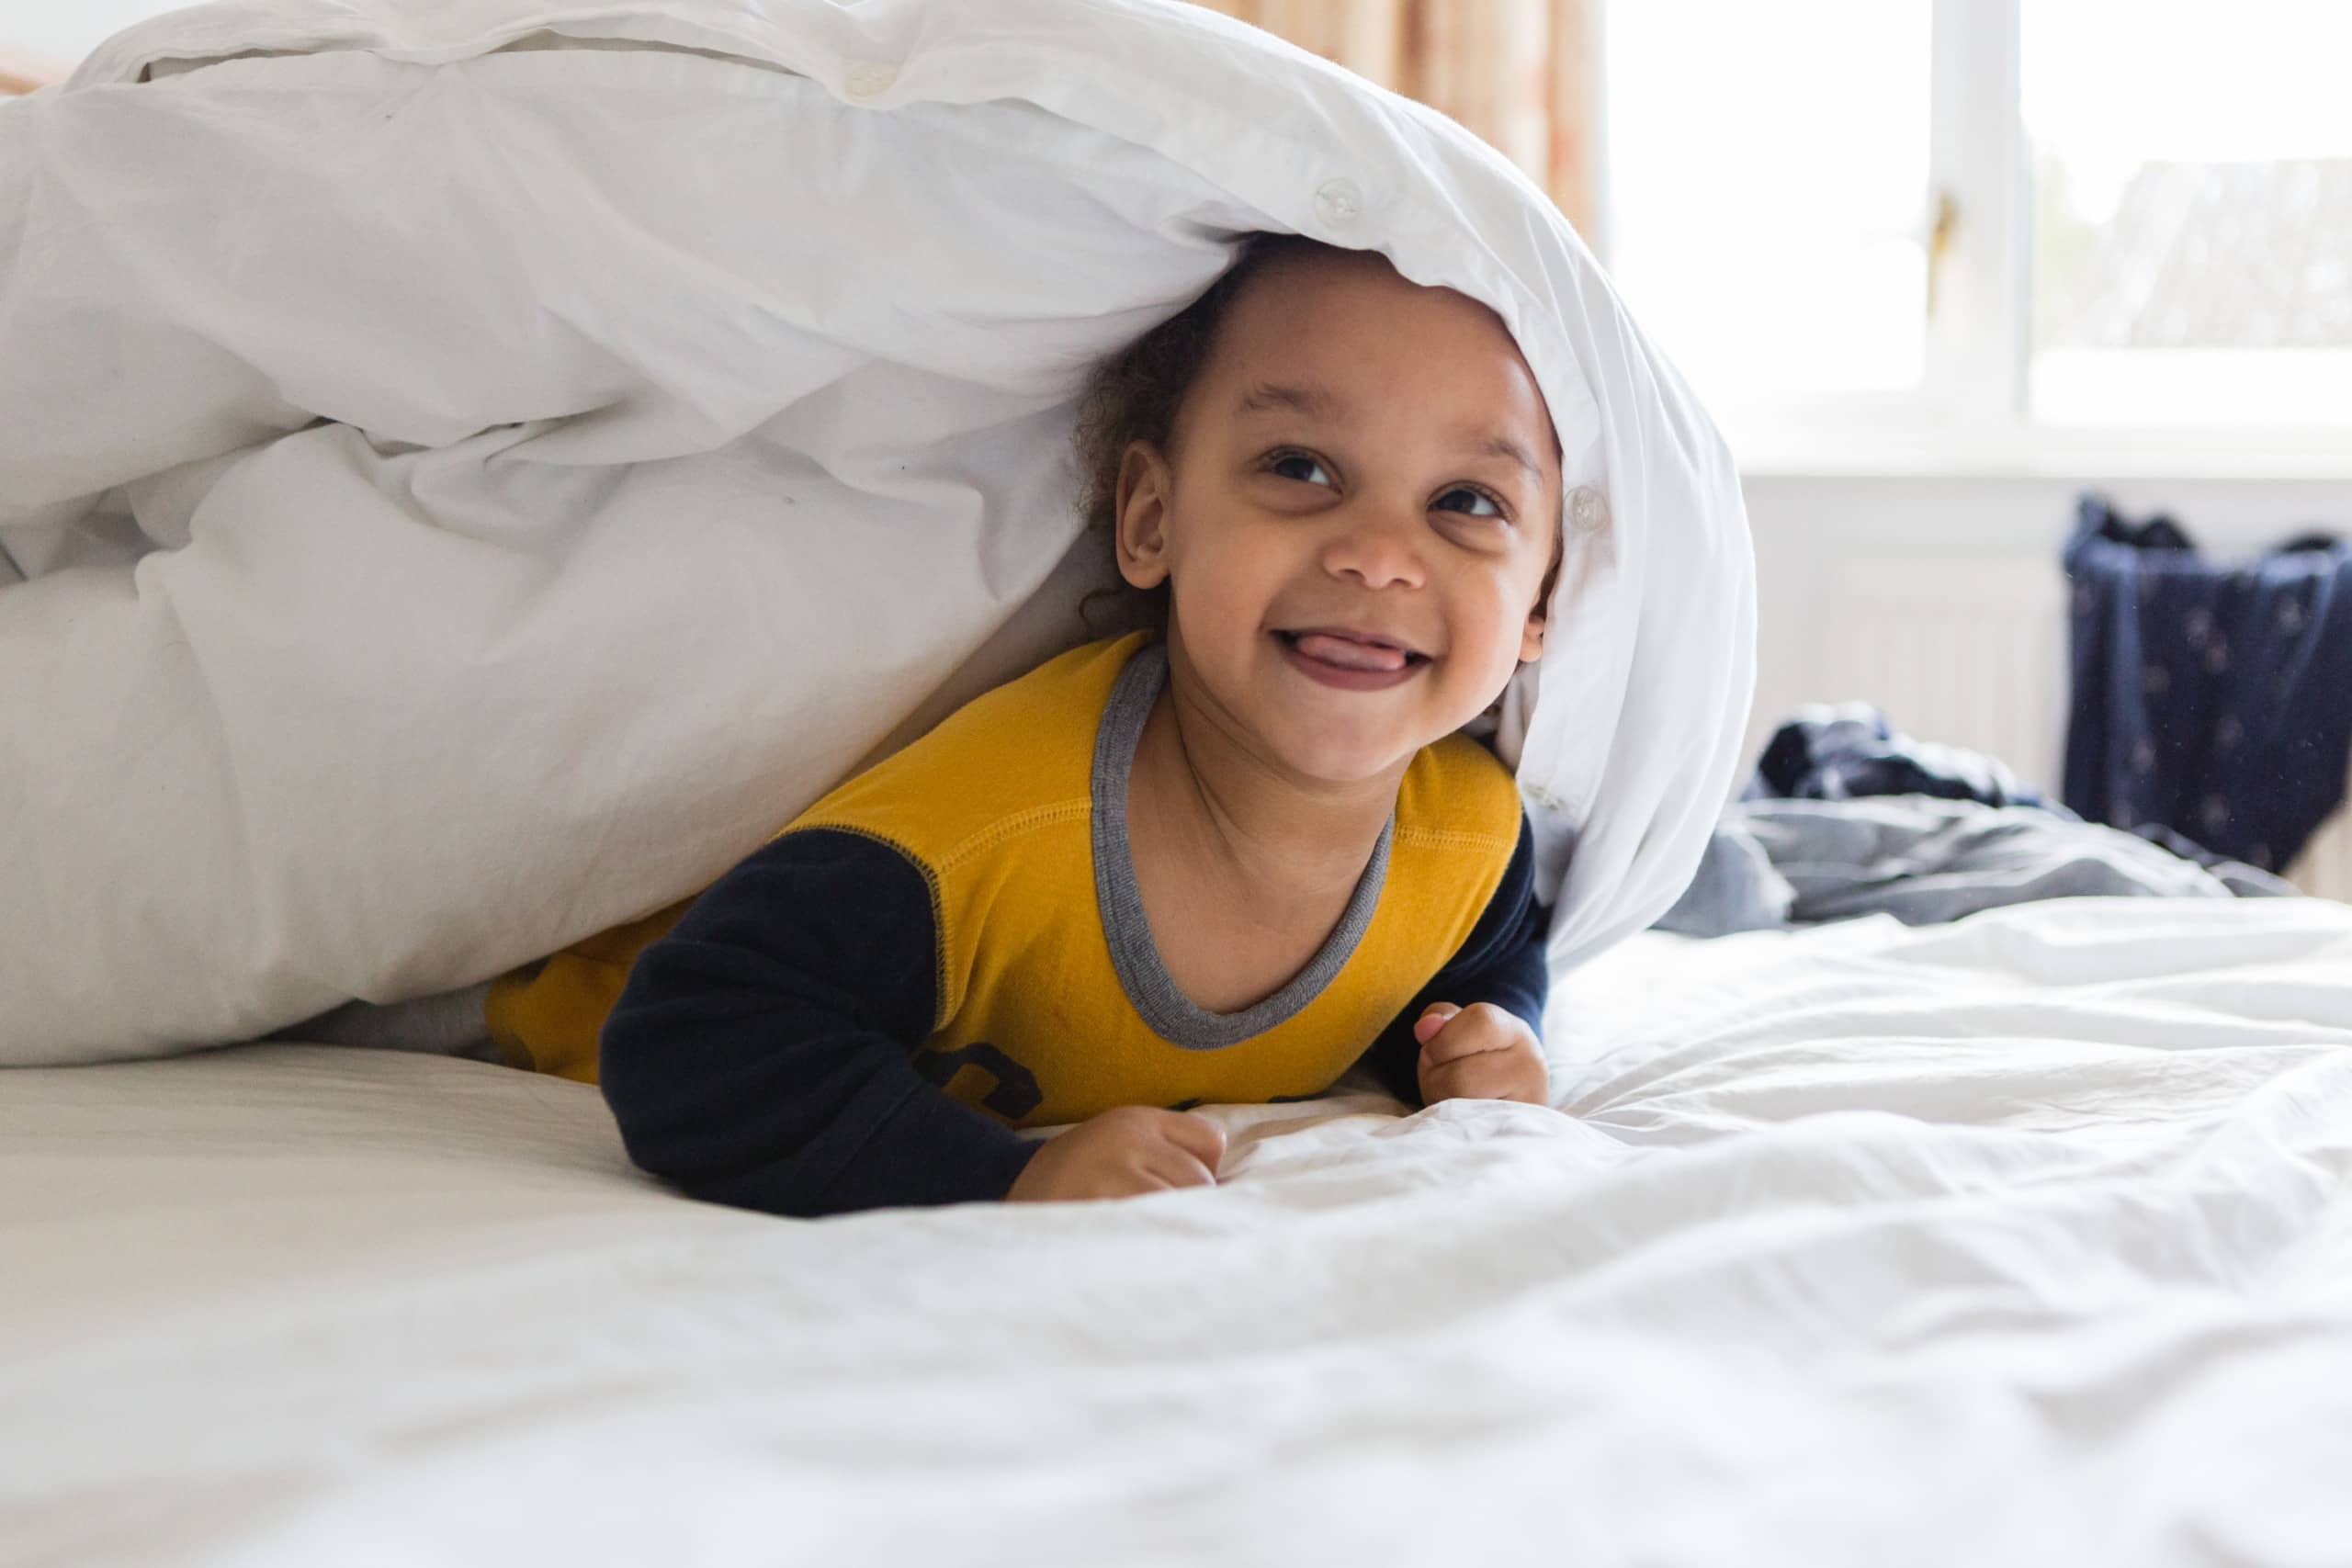 Young boy plays under duvet on bed